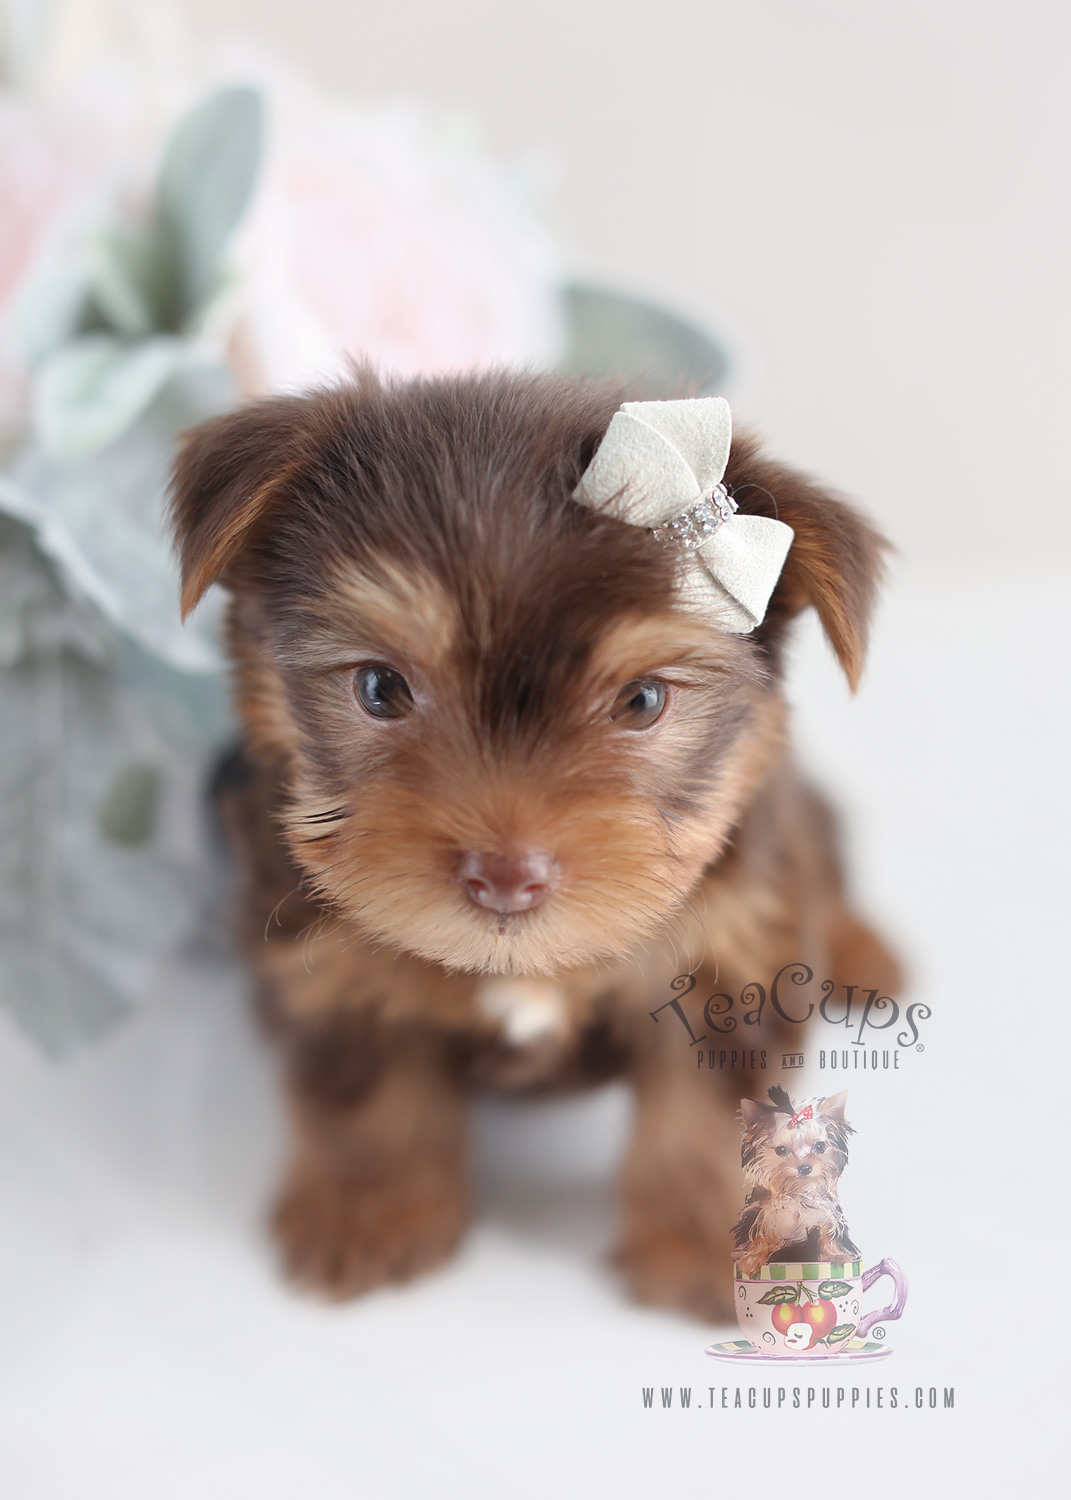 Chocolate Yorkie Puppies For Sale by Teacup Puppies